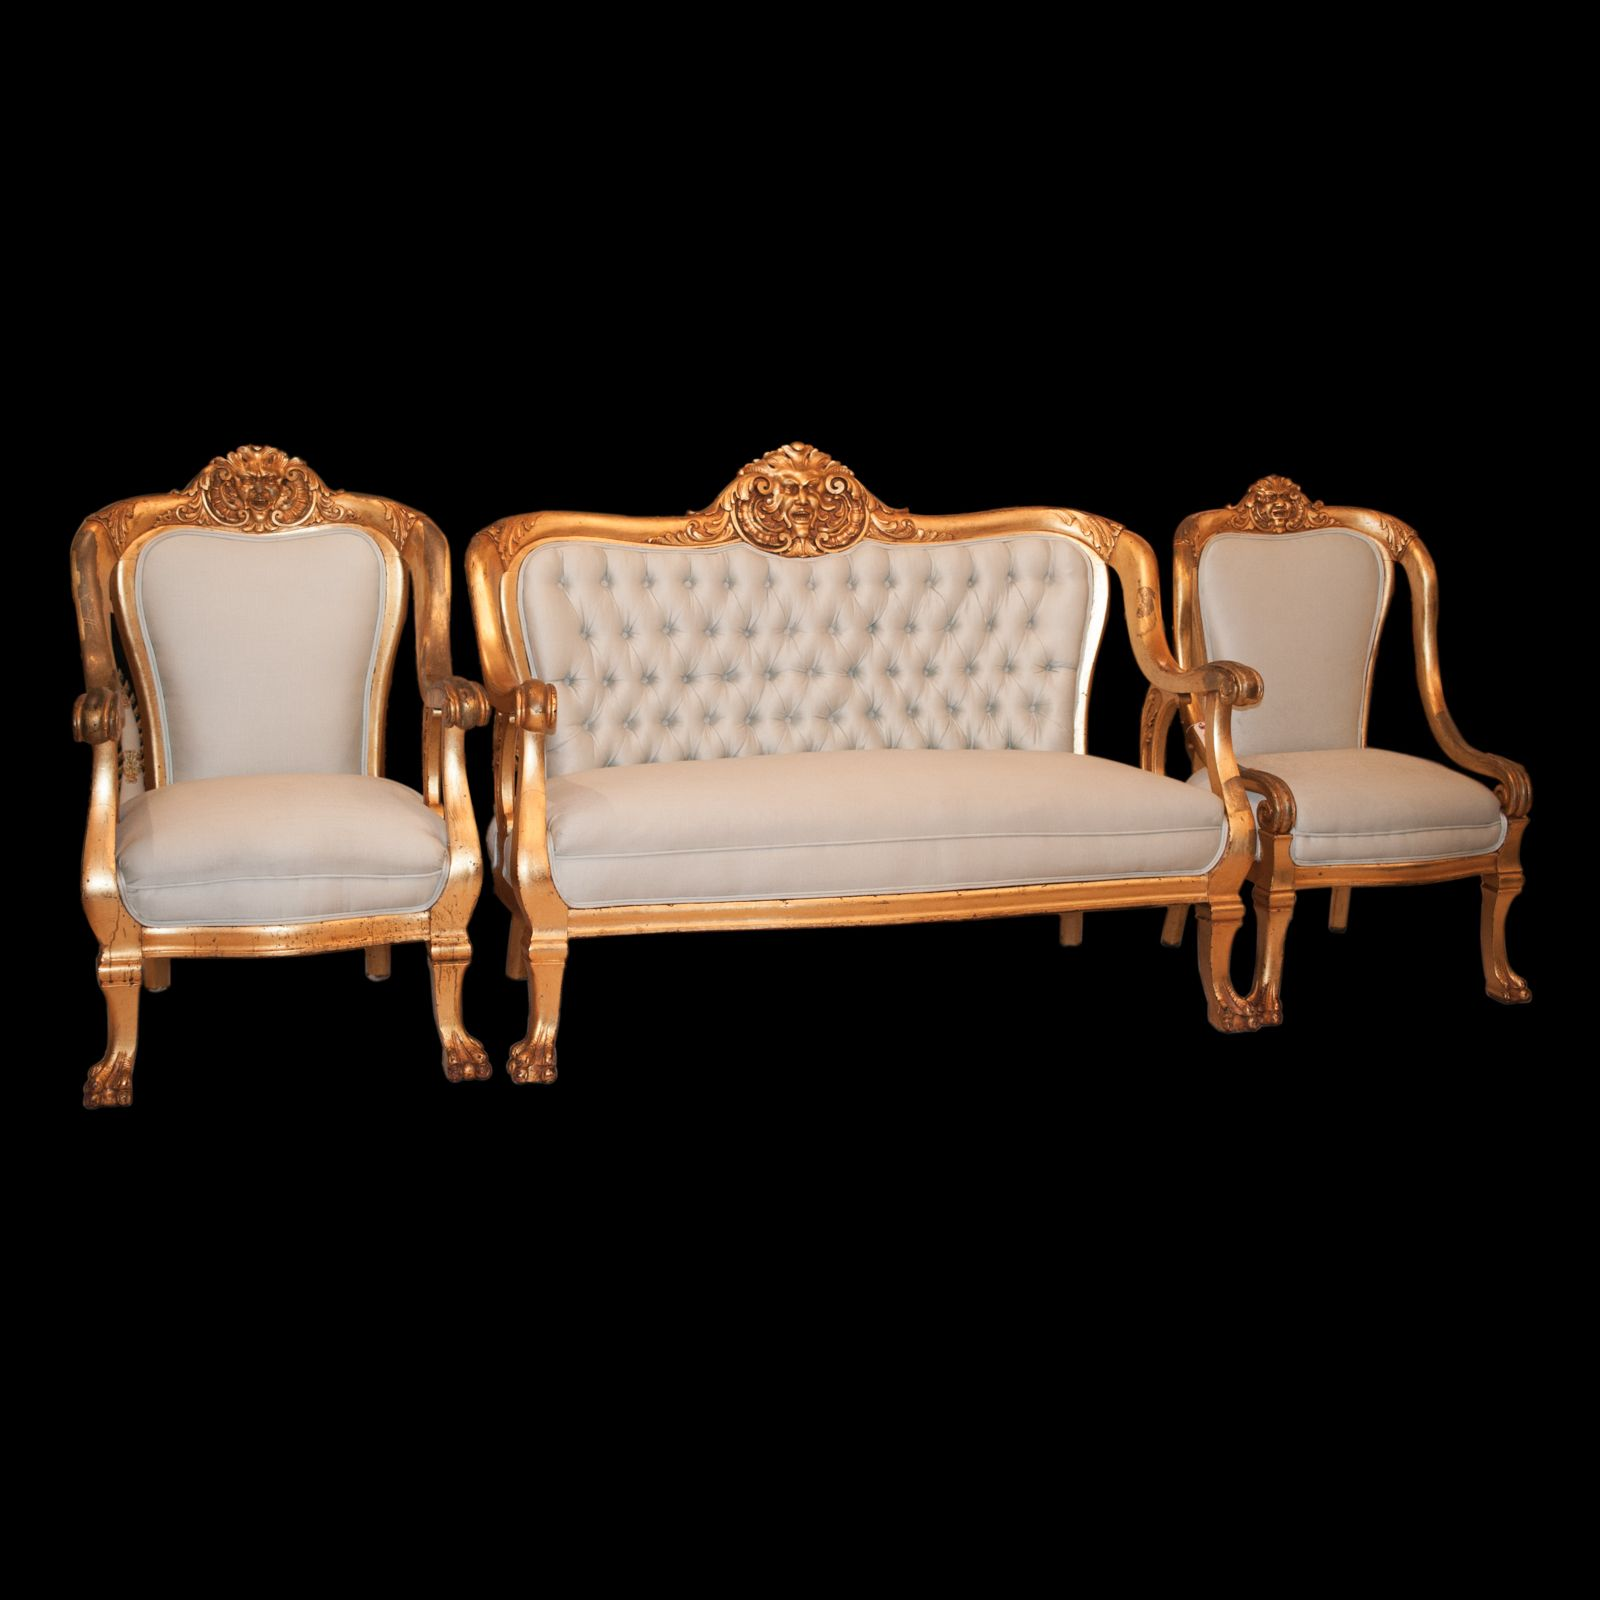 Lot #12: Victorian Furniture Set  DESCRIPTION:Victorian furniture set featuring a chair, an arm chair, and love set. All peices are garnished with gilded wood frame and celeste blue upholstery. Finished with smiling figures along the top of the frame and animal footed style legs.  CIRCA:Early 20th Ct. ORIGIN:France DIMENSIONS: Chair:H: 39″ L:23″ W:22.5″ Arm Chair: H:41″ L: 27″ W: 26″ Love Seat: H:41″ L:56″ W:28″